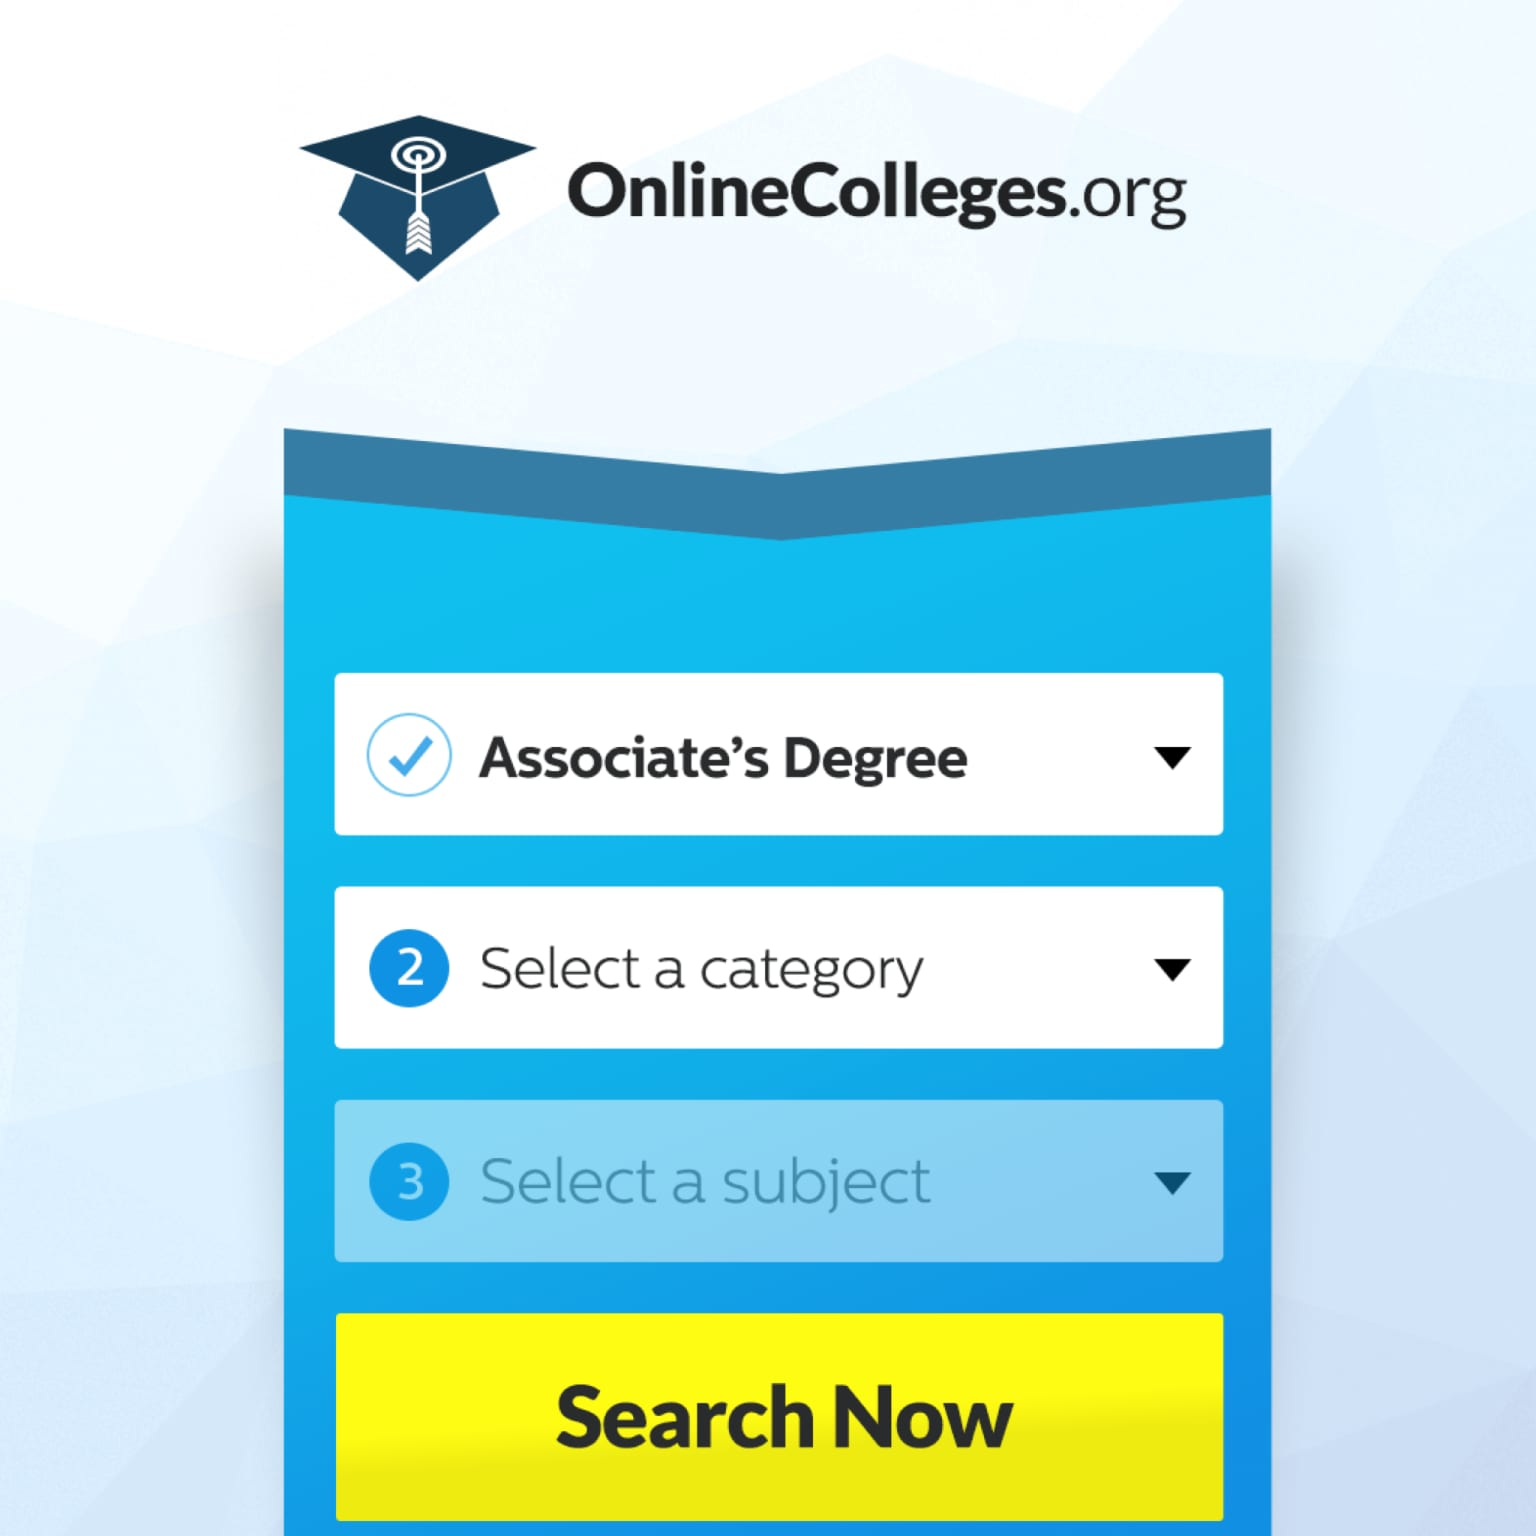 OnlineColleges.org CRO Redesign